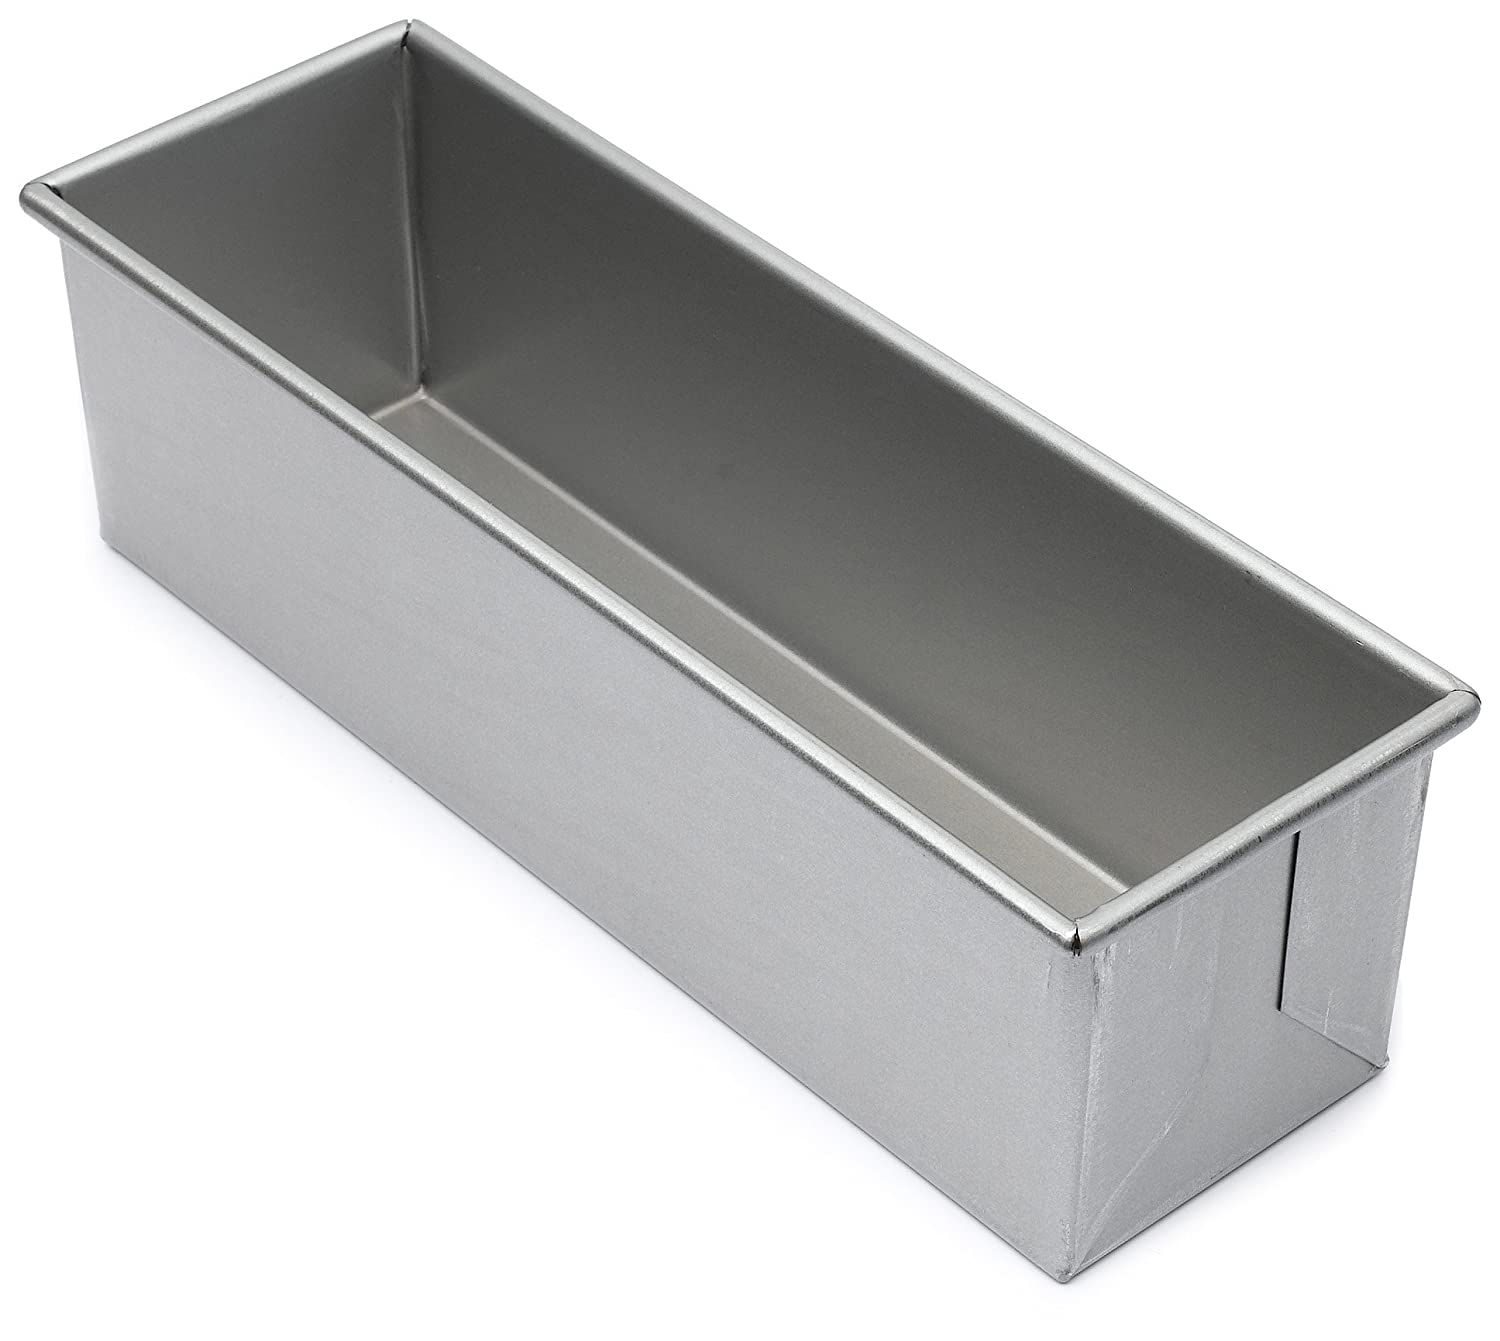 Focus Foodservice Commercial Bakeware Sliding Cover for 1 1/2 Pound Pullman Pan Amco Food Service 904660